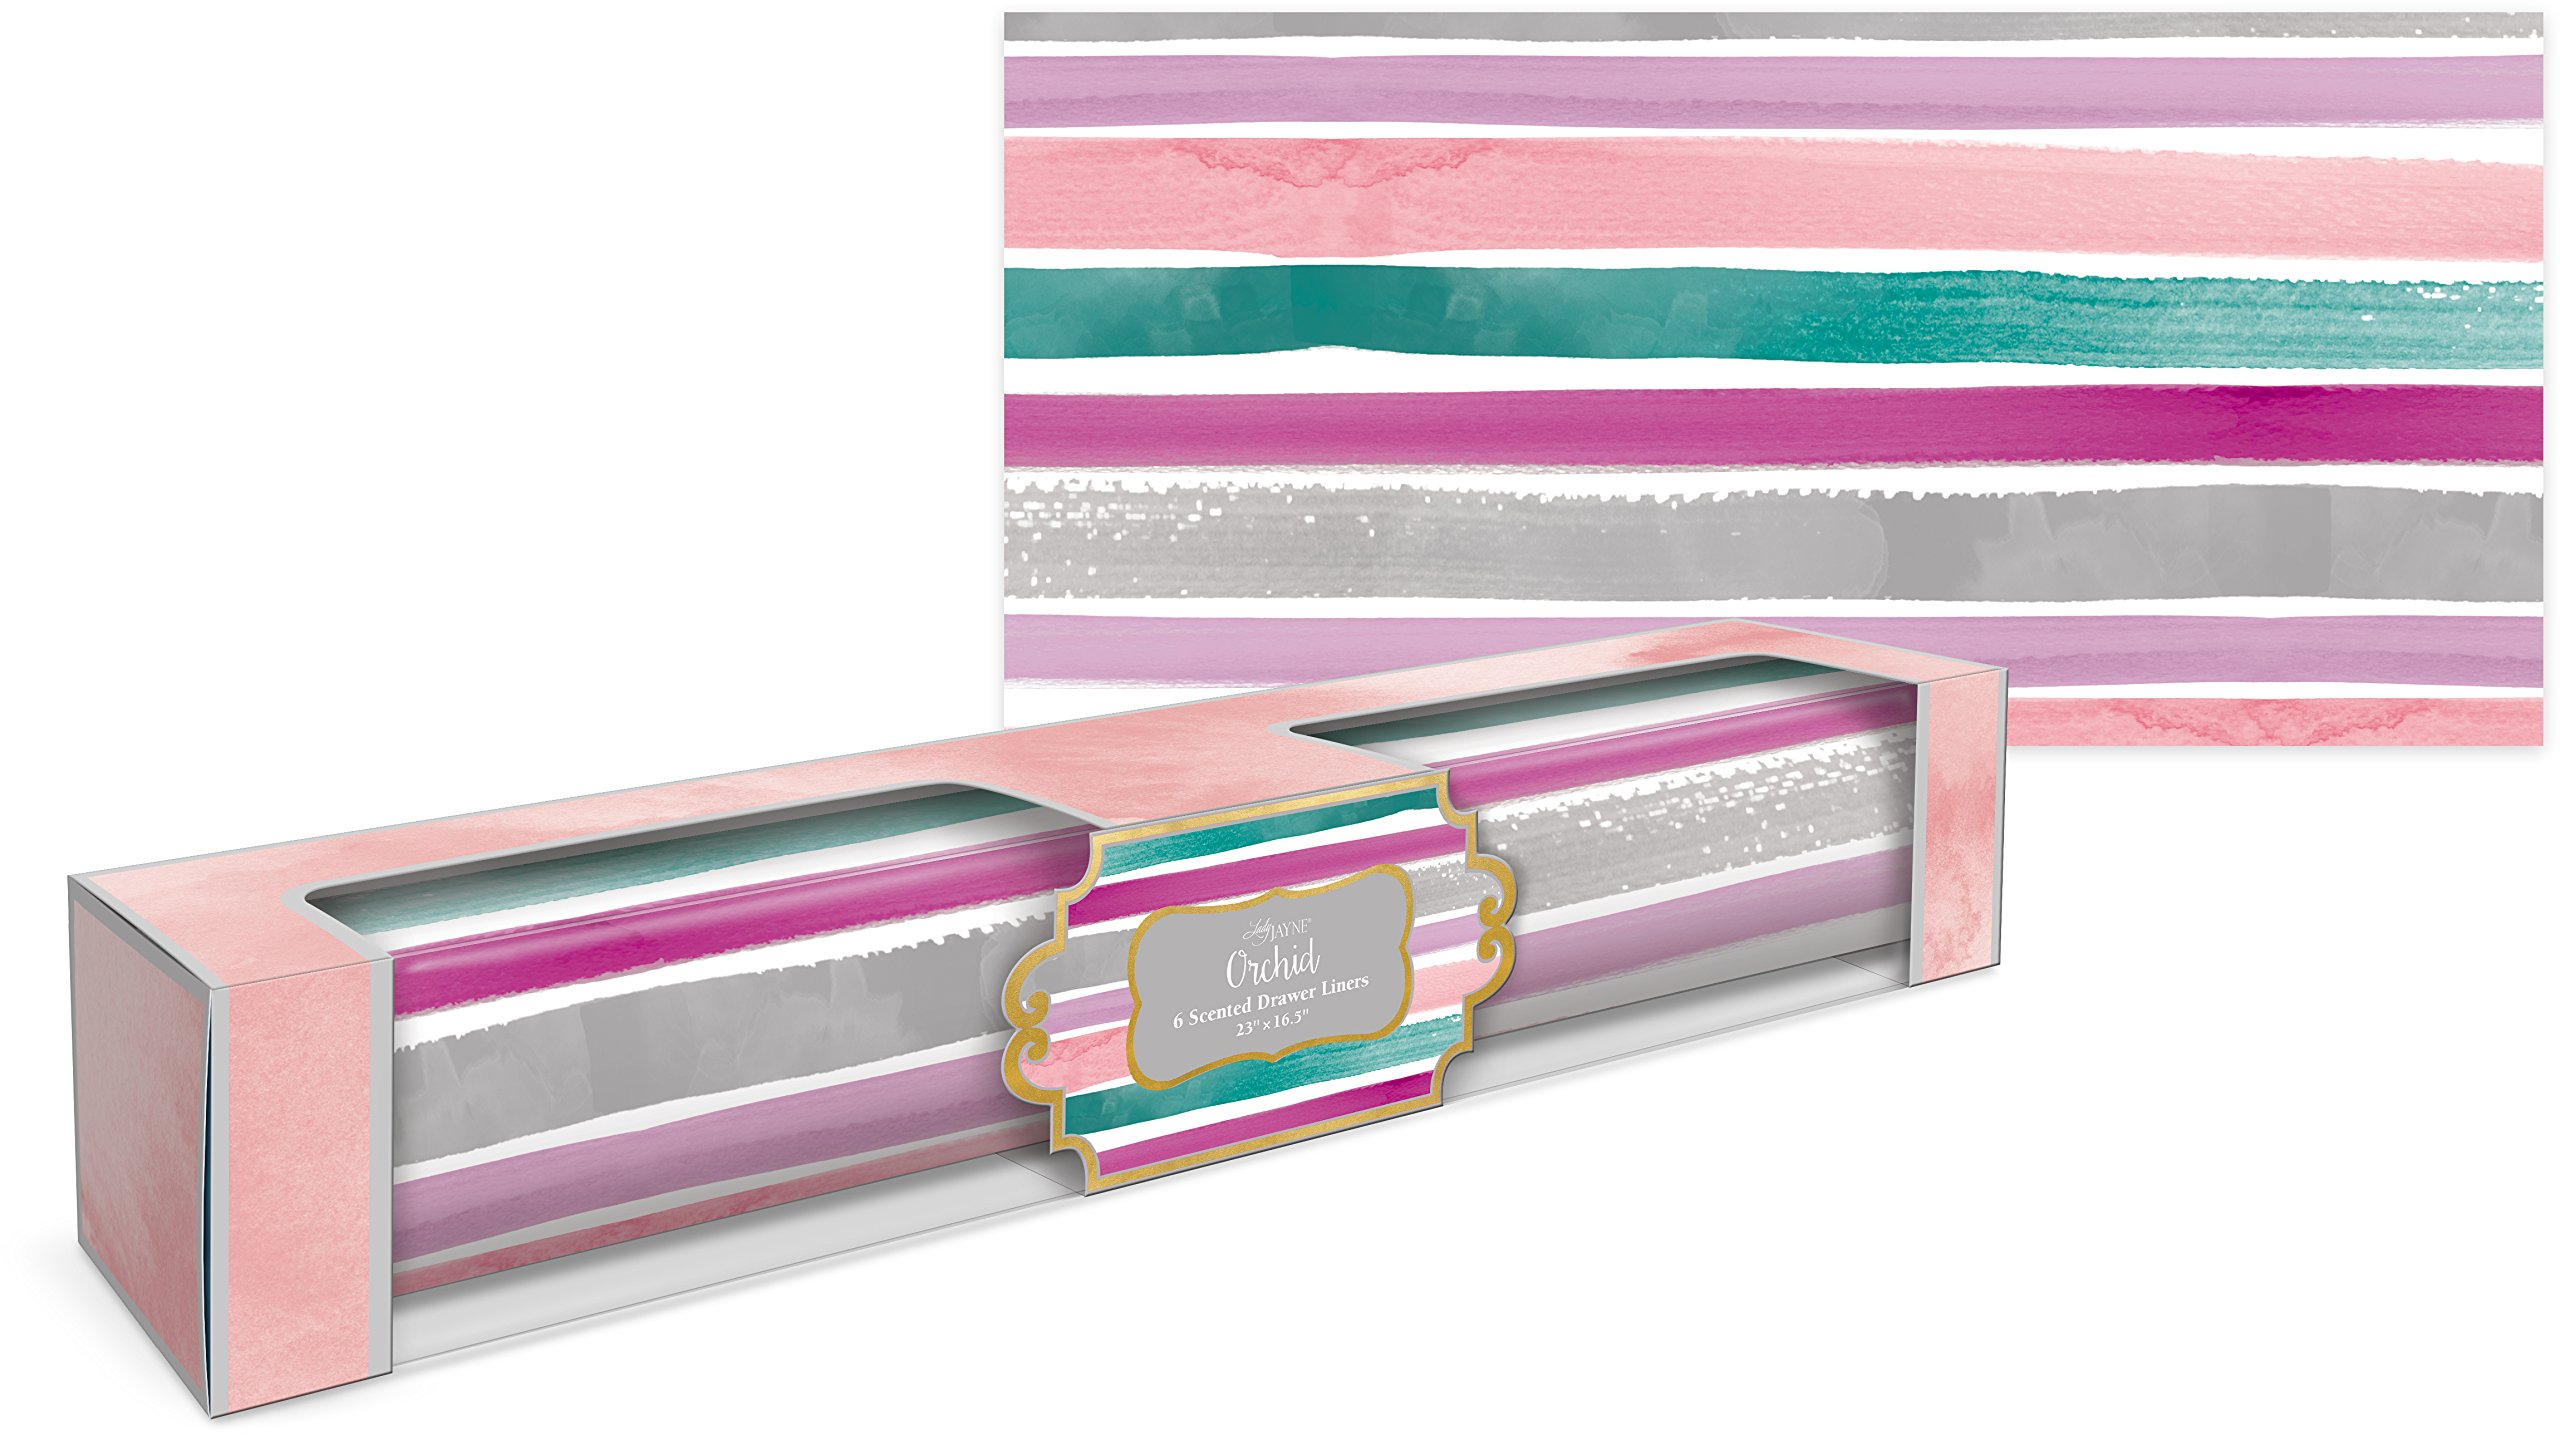 Lady Jayne Ikat Striped Orchid Scented Drawer Liners